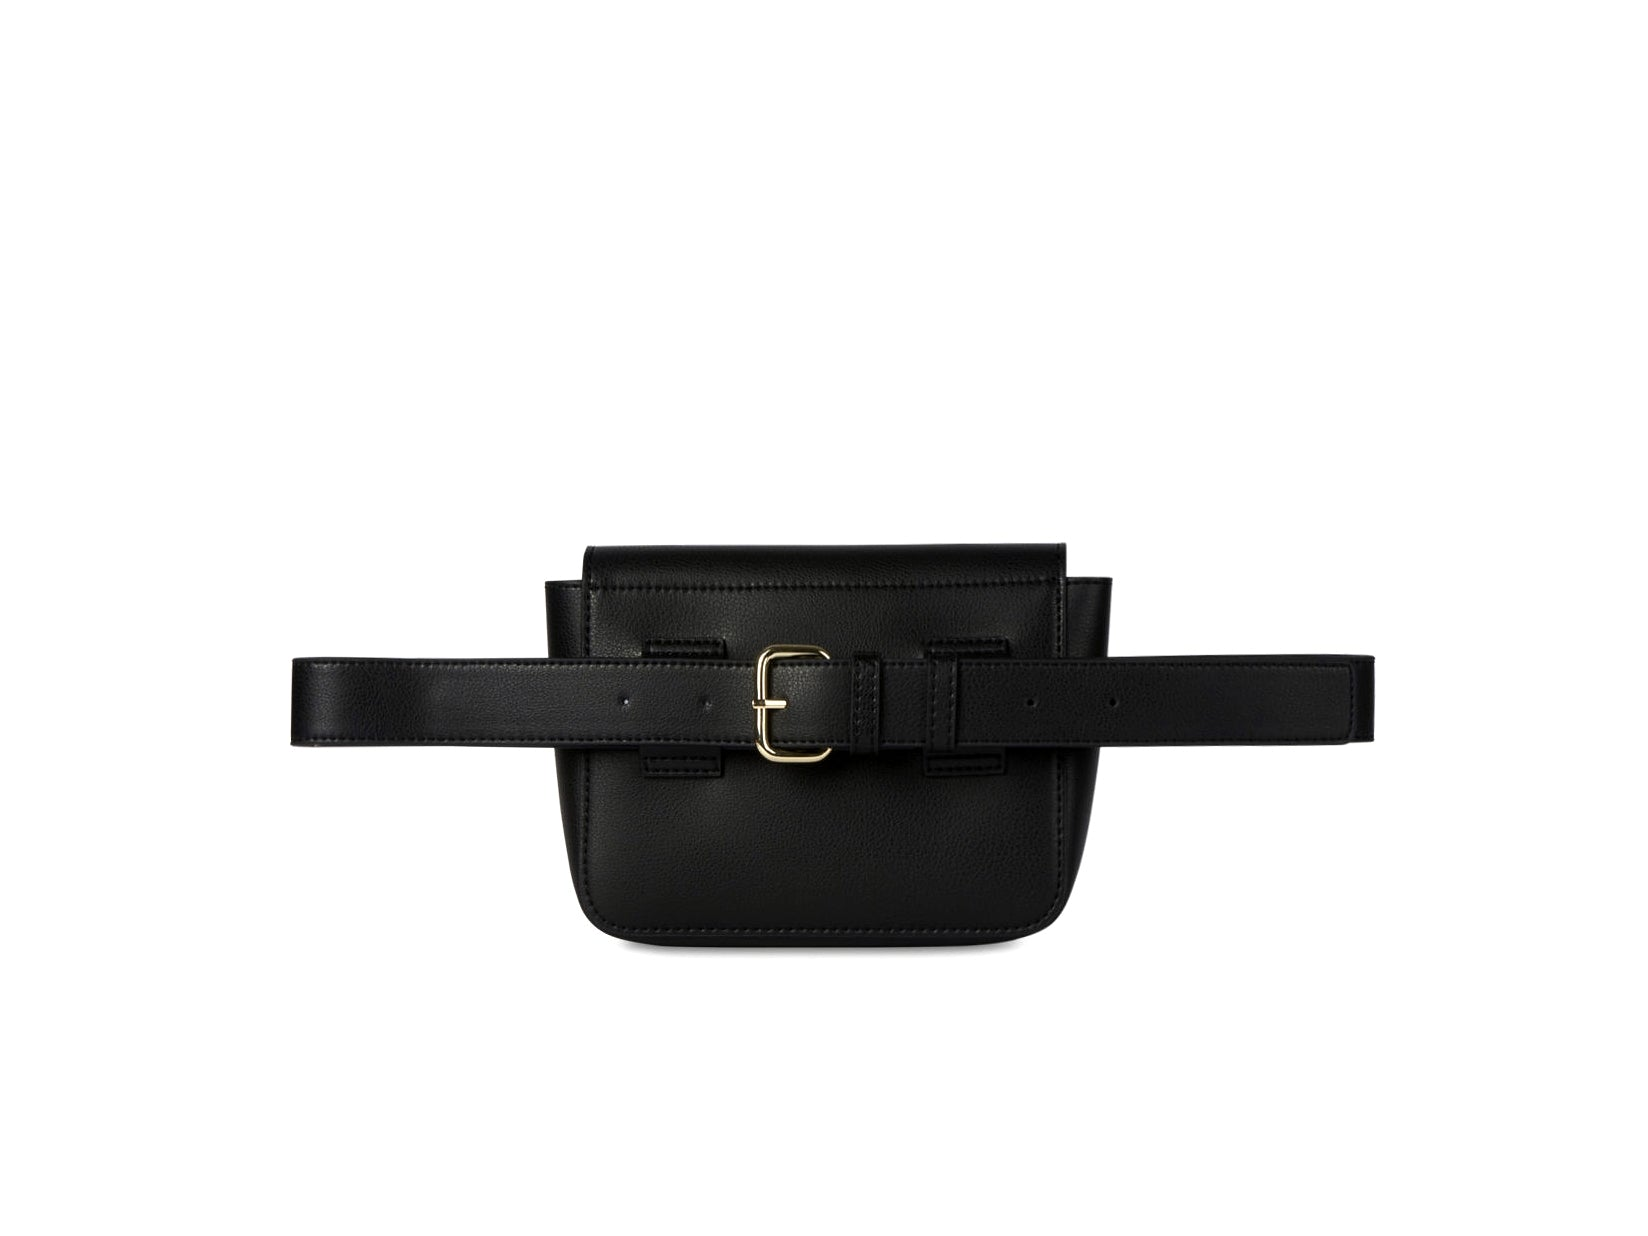 TRUSSARDI Dafne Belt Bag Borsa Donna Black 75B00866